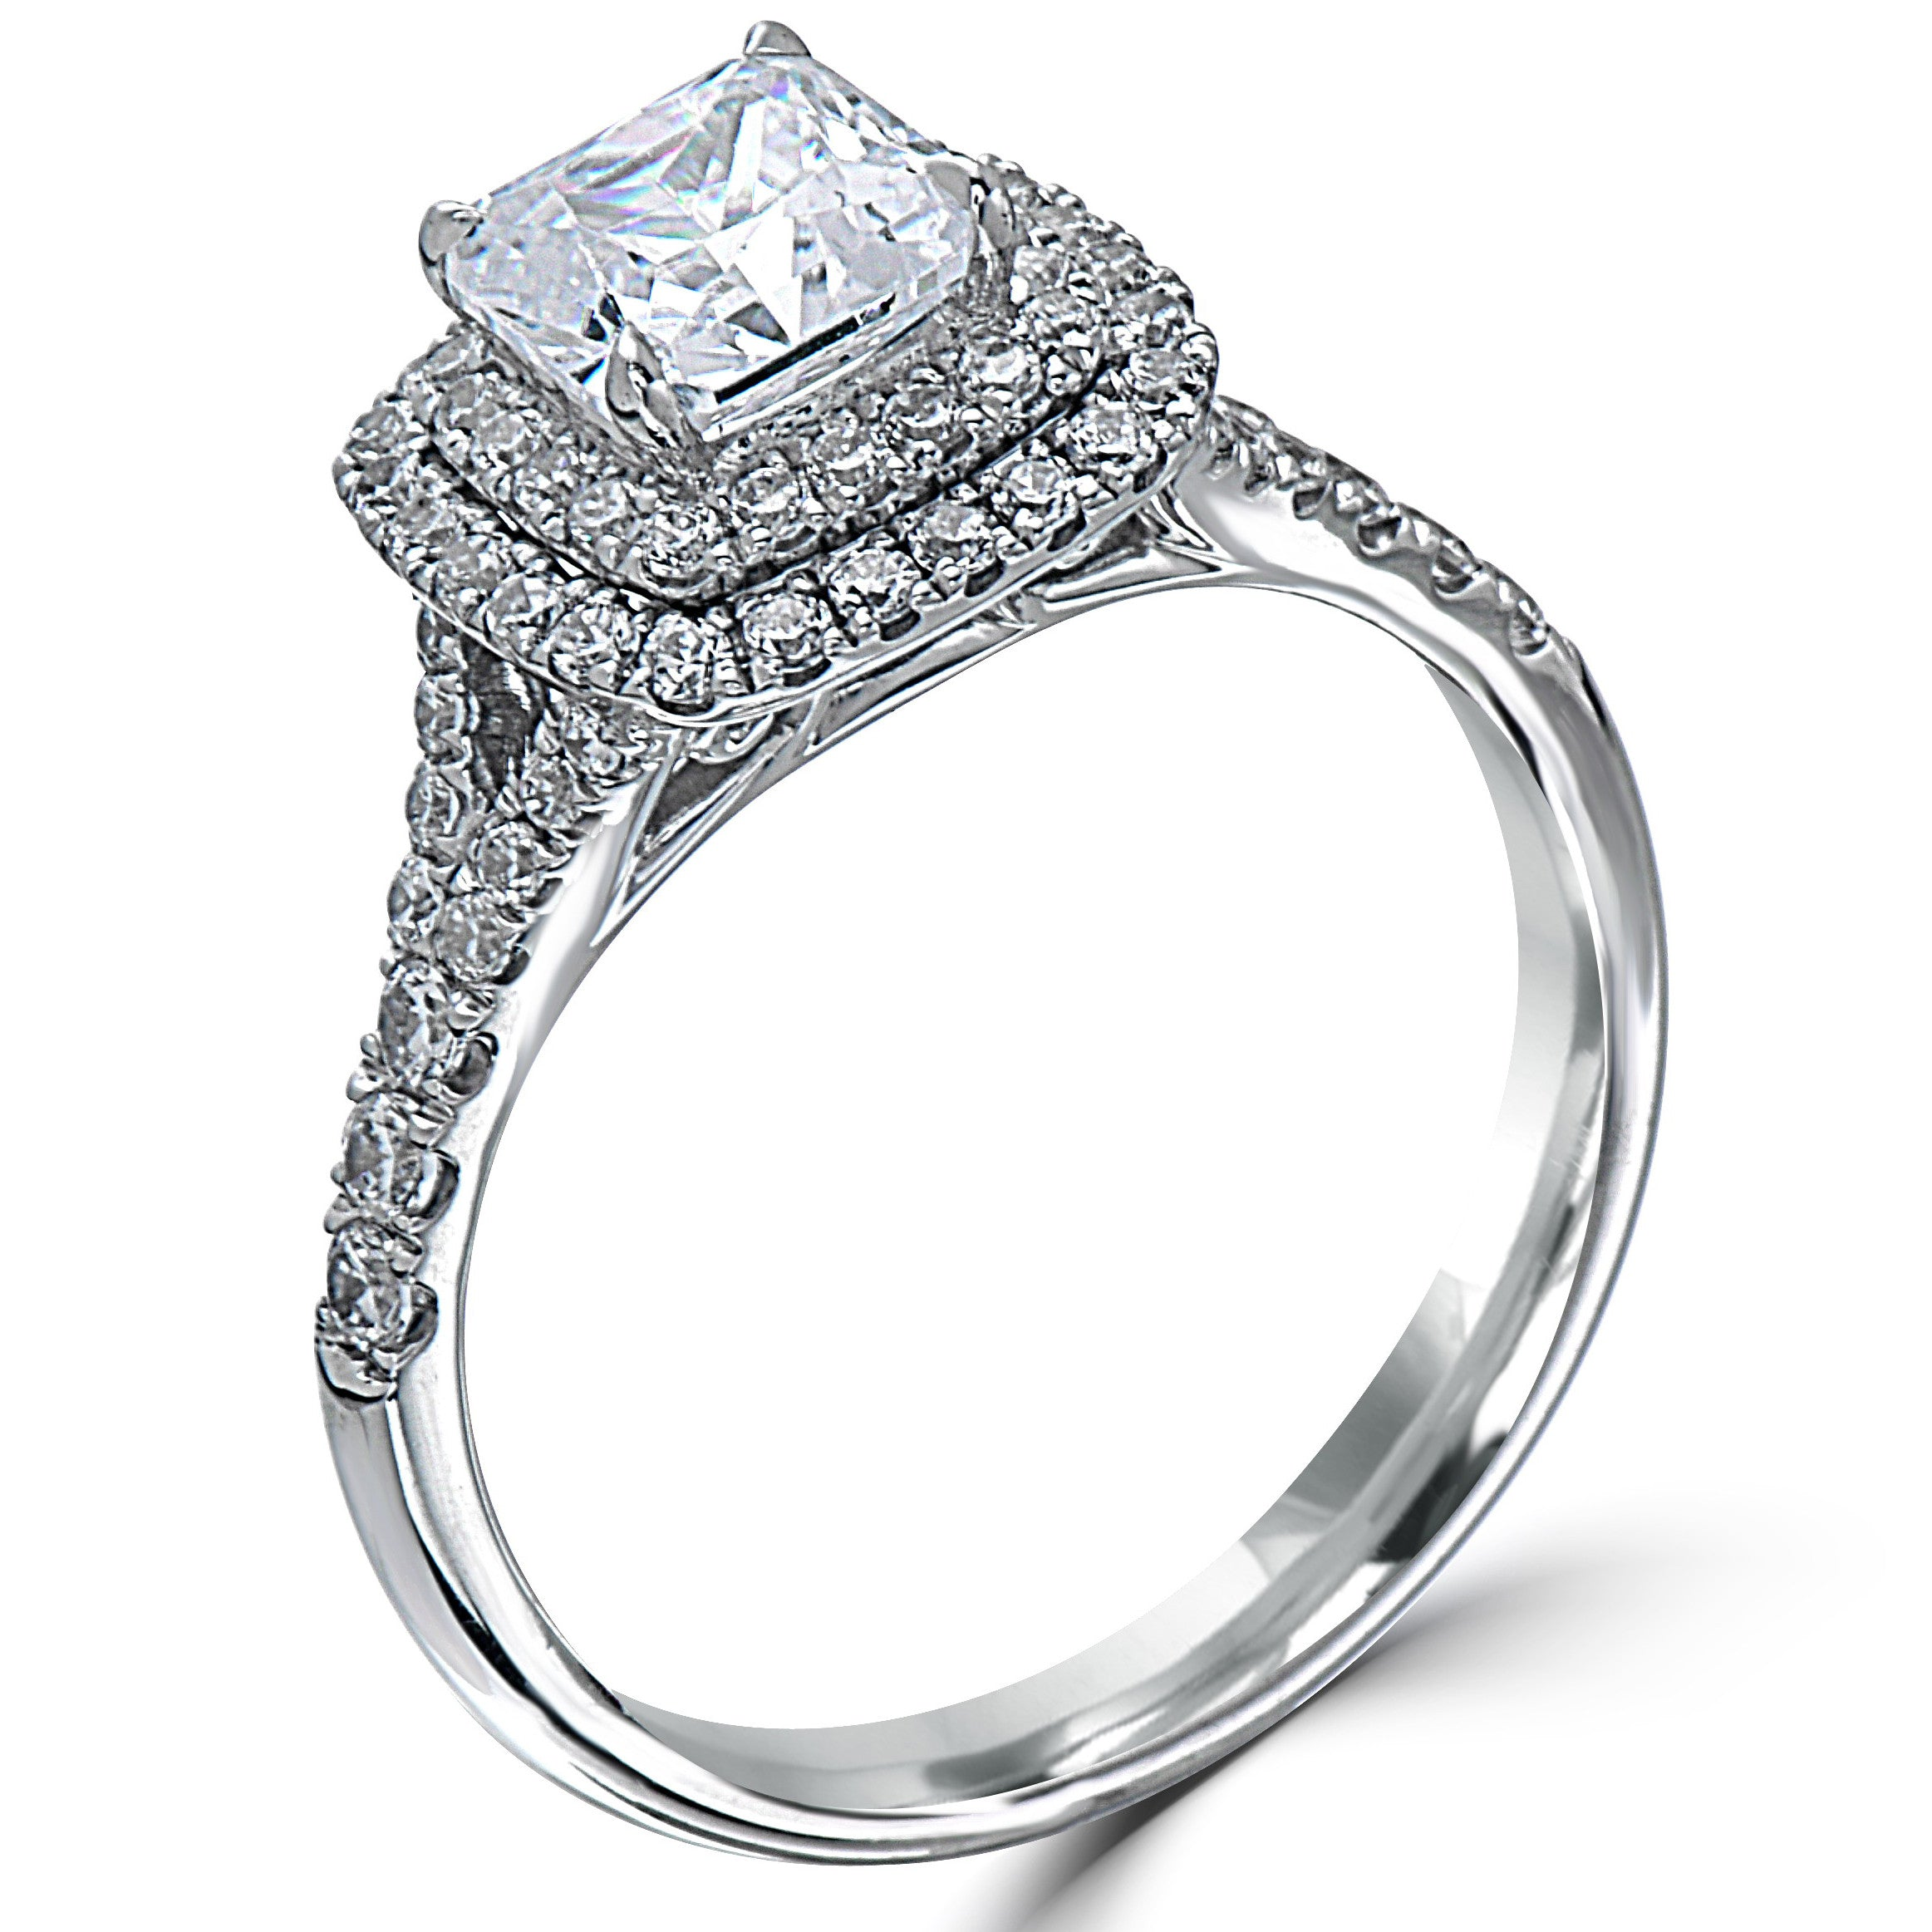 rings ring engagement platinium platinum diamond piaget content jewellery wedding